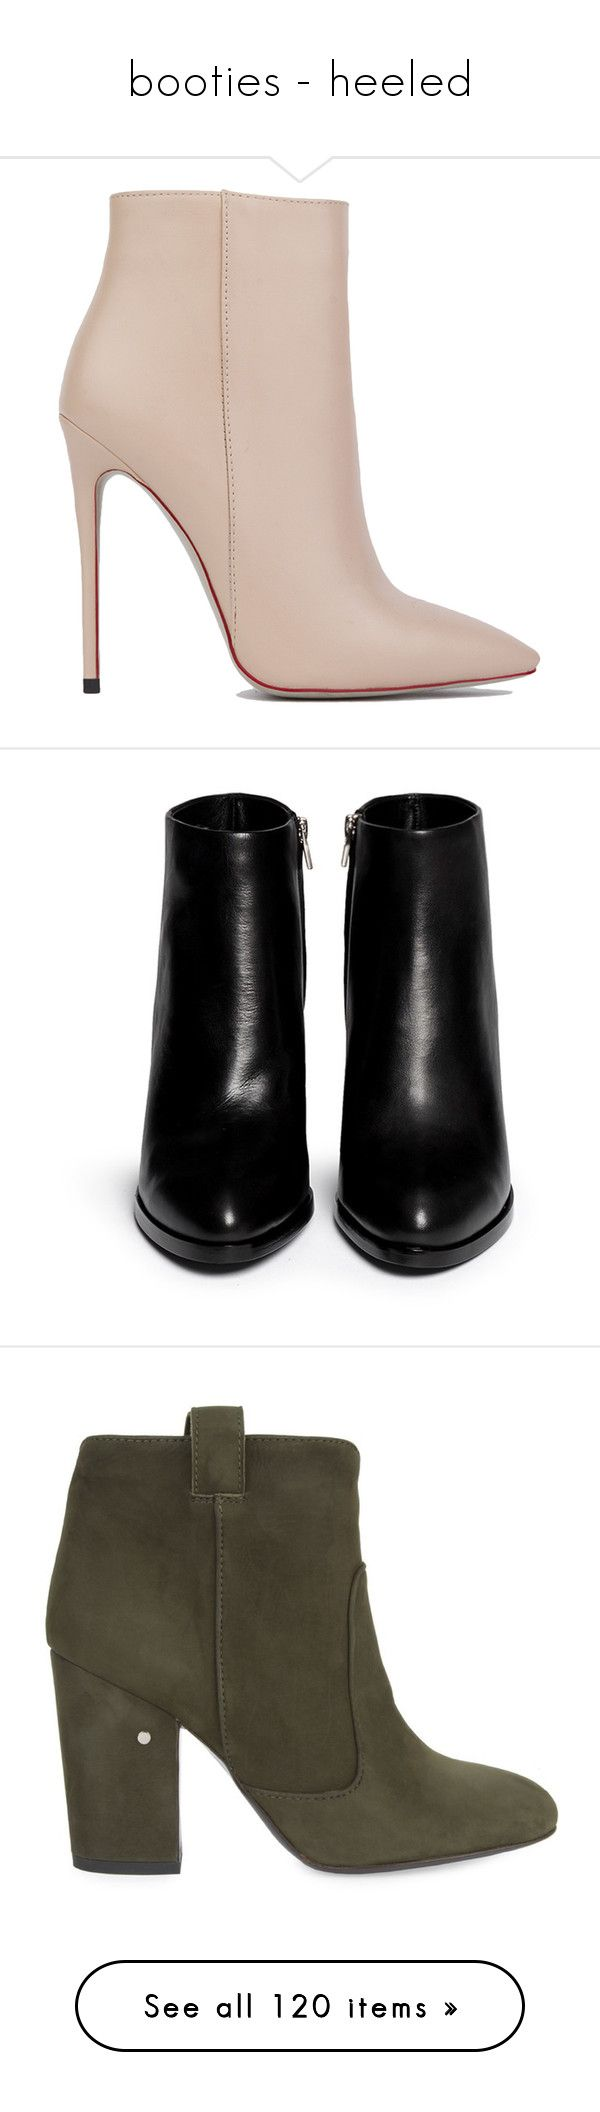 """""""booties - heeled"""" by whitesandprincess ❤ liked on Polyvore featuring shoes, boots, ankle booties, heels, ankle boots, booties, nude pu, heeled boots, heeled booties and nude ankle boots"""